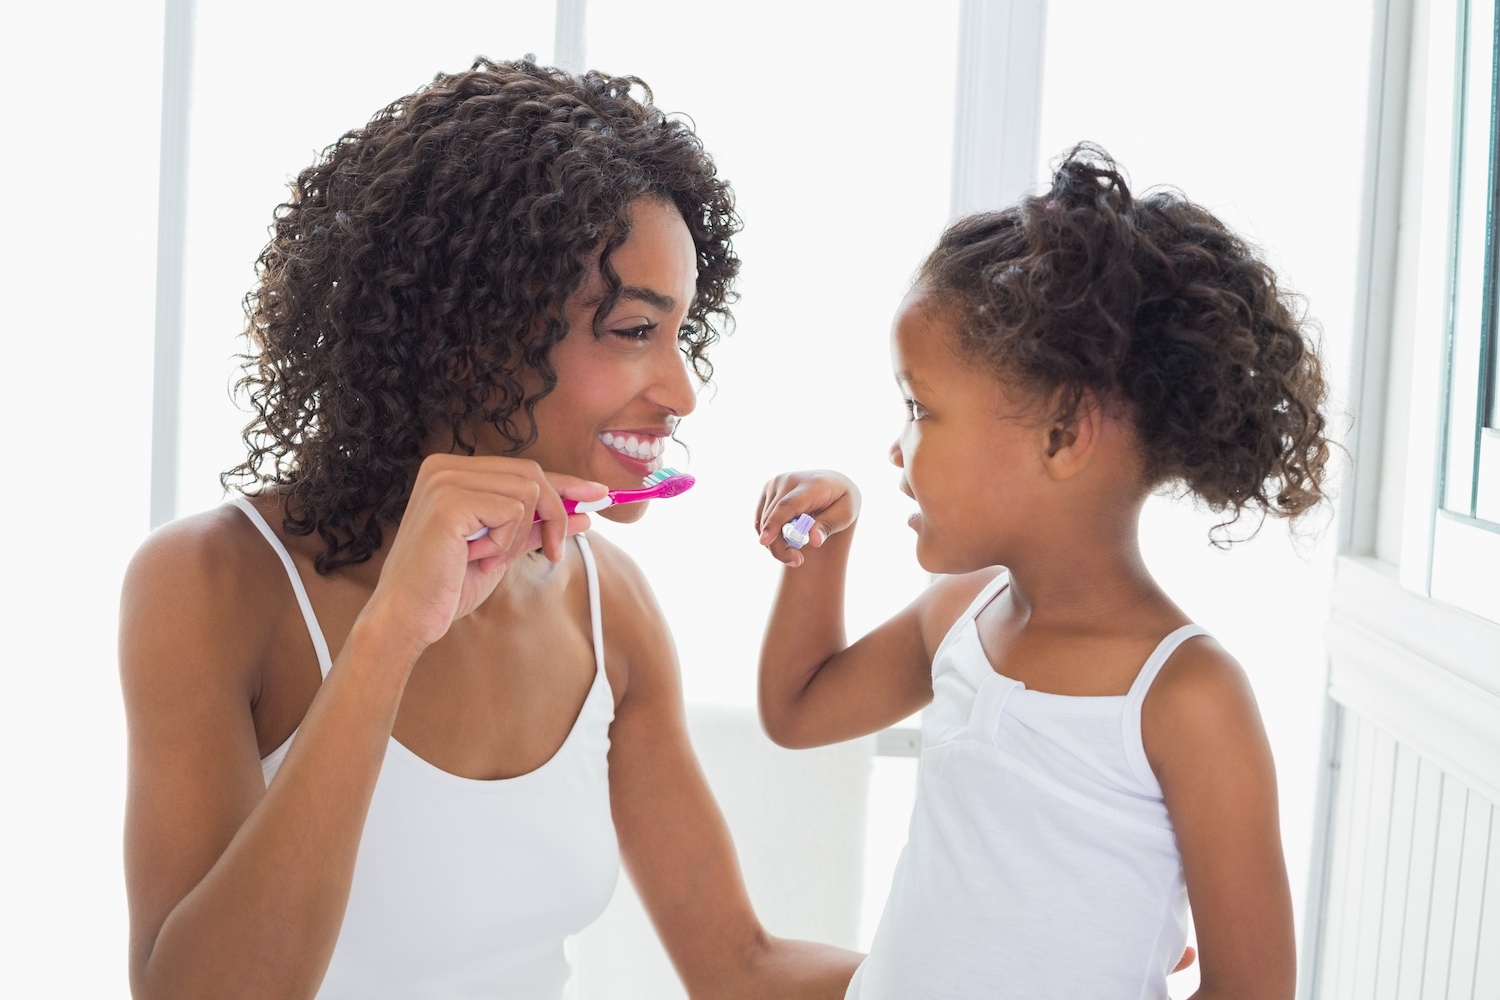 Why Does My Child Have Swollen Gums? What You Should Know